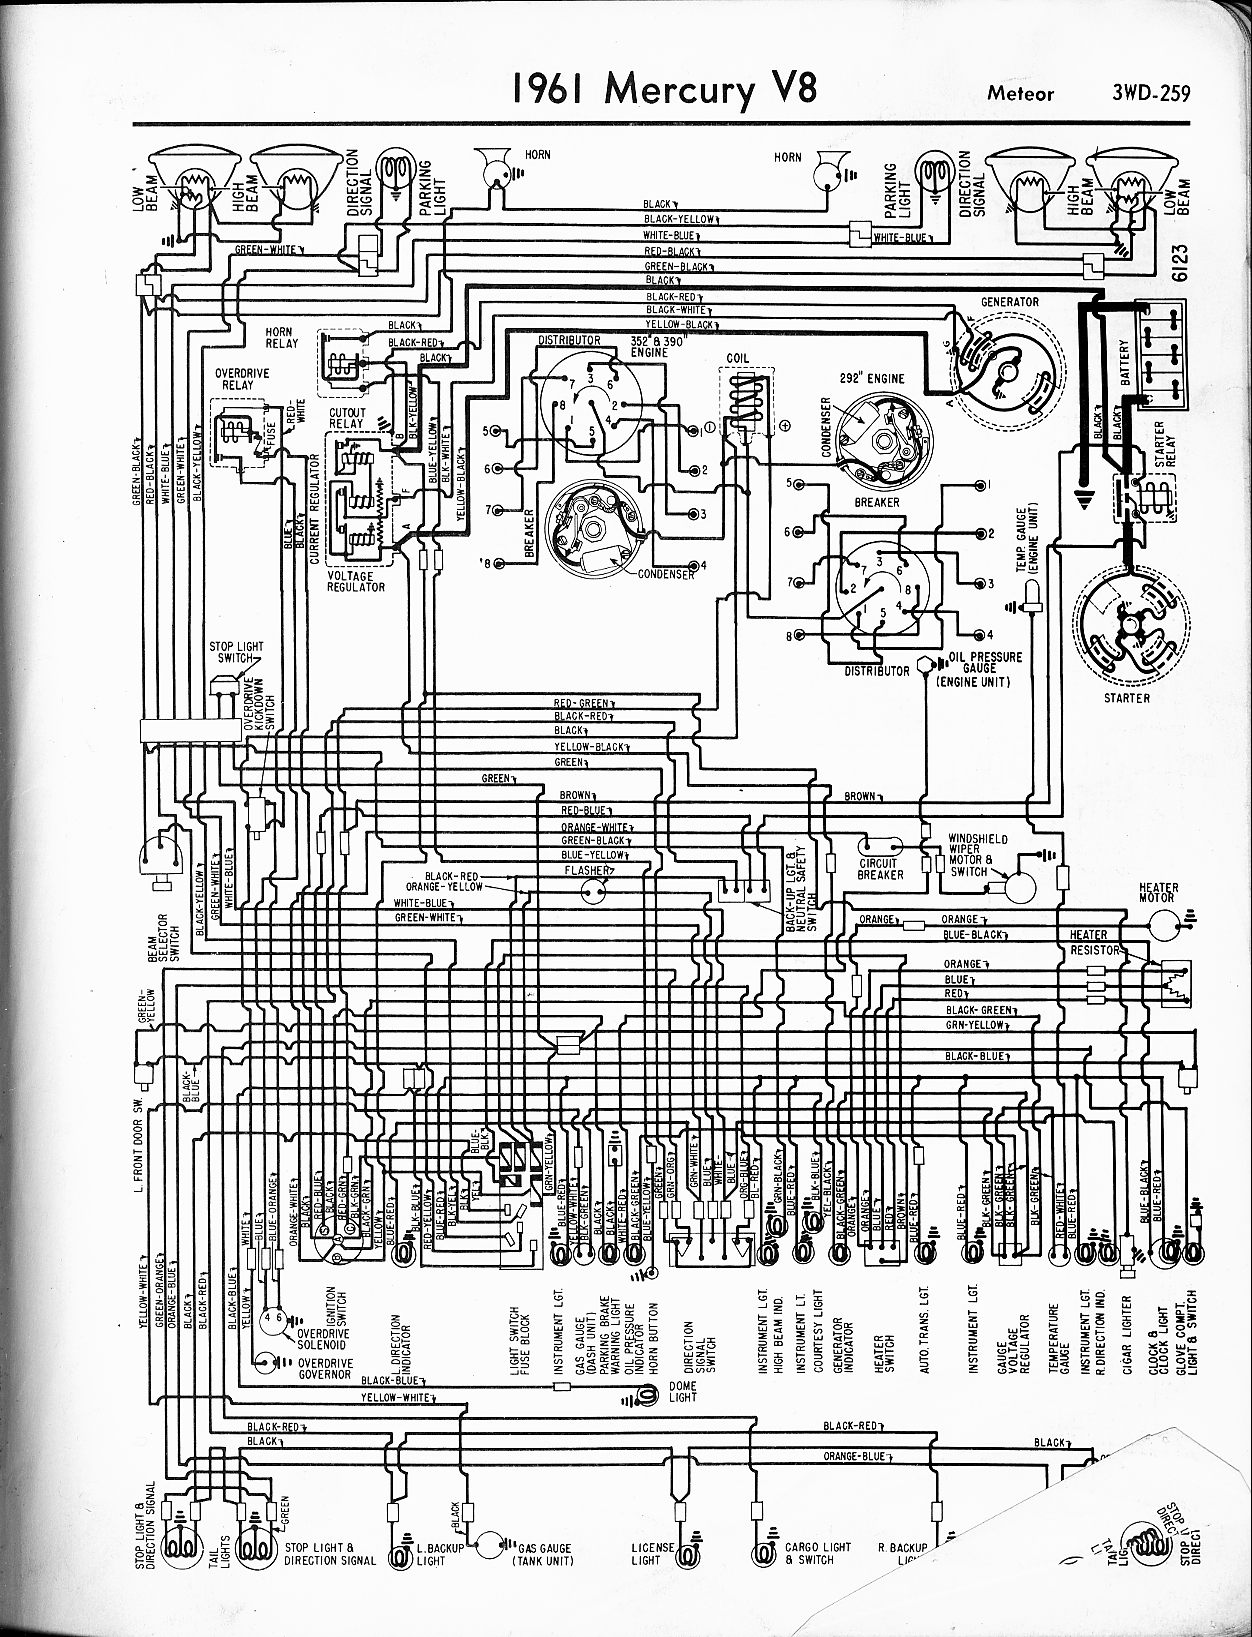 Mercury Wiring Diagrams The Old Car Manual Project Of 1961 6 V8 Meteor